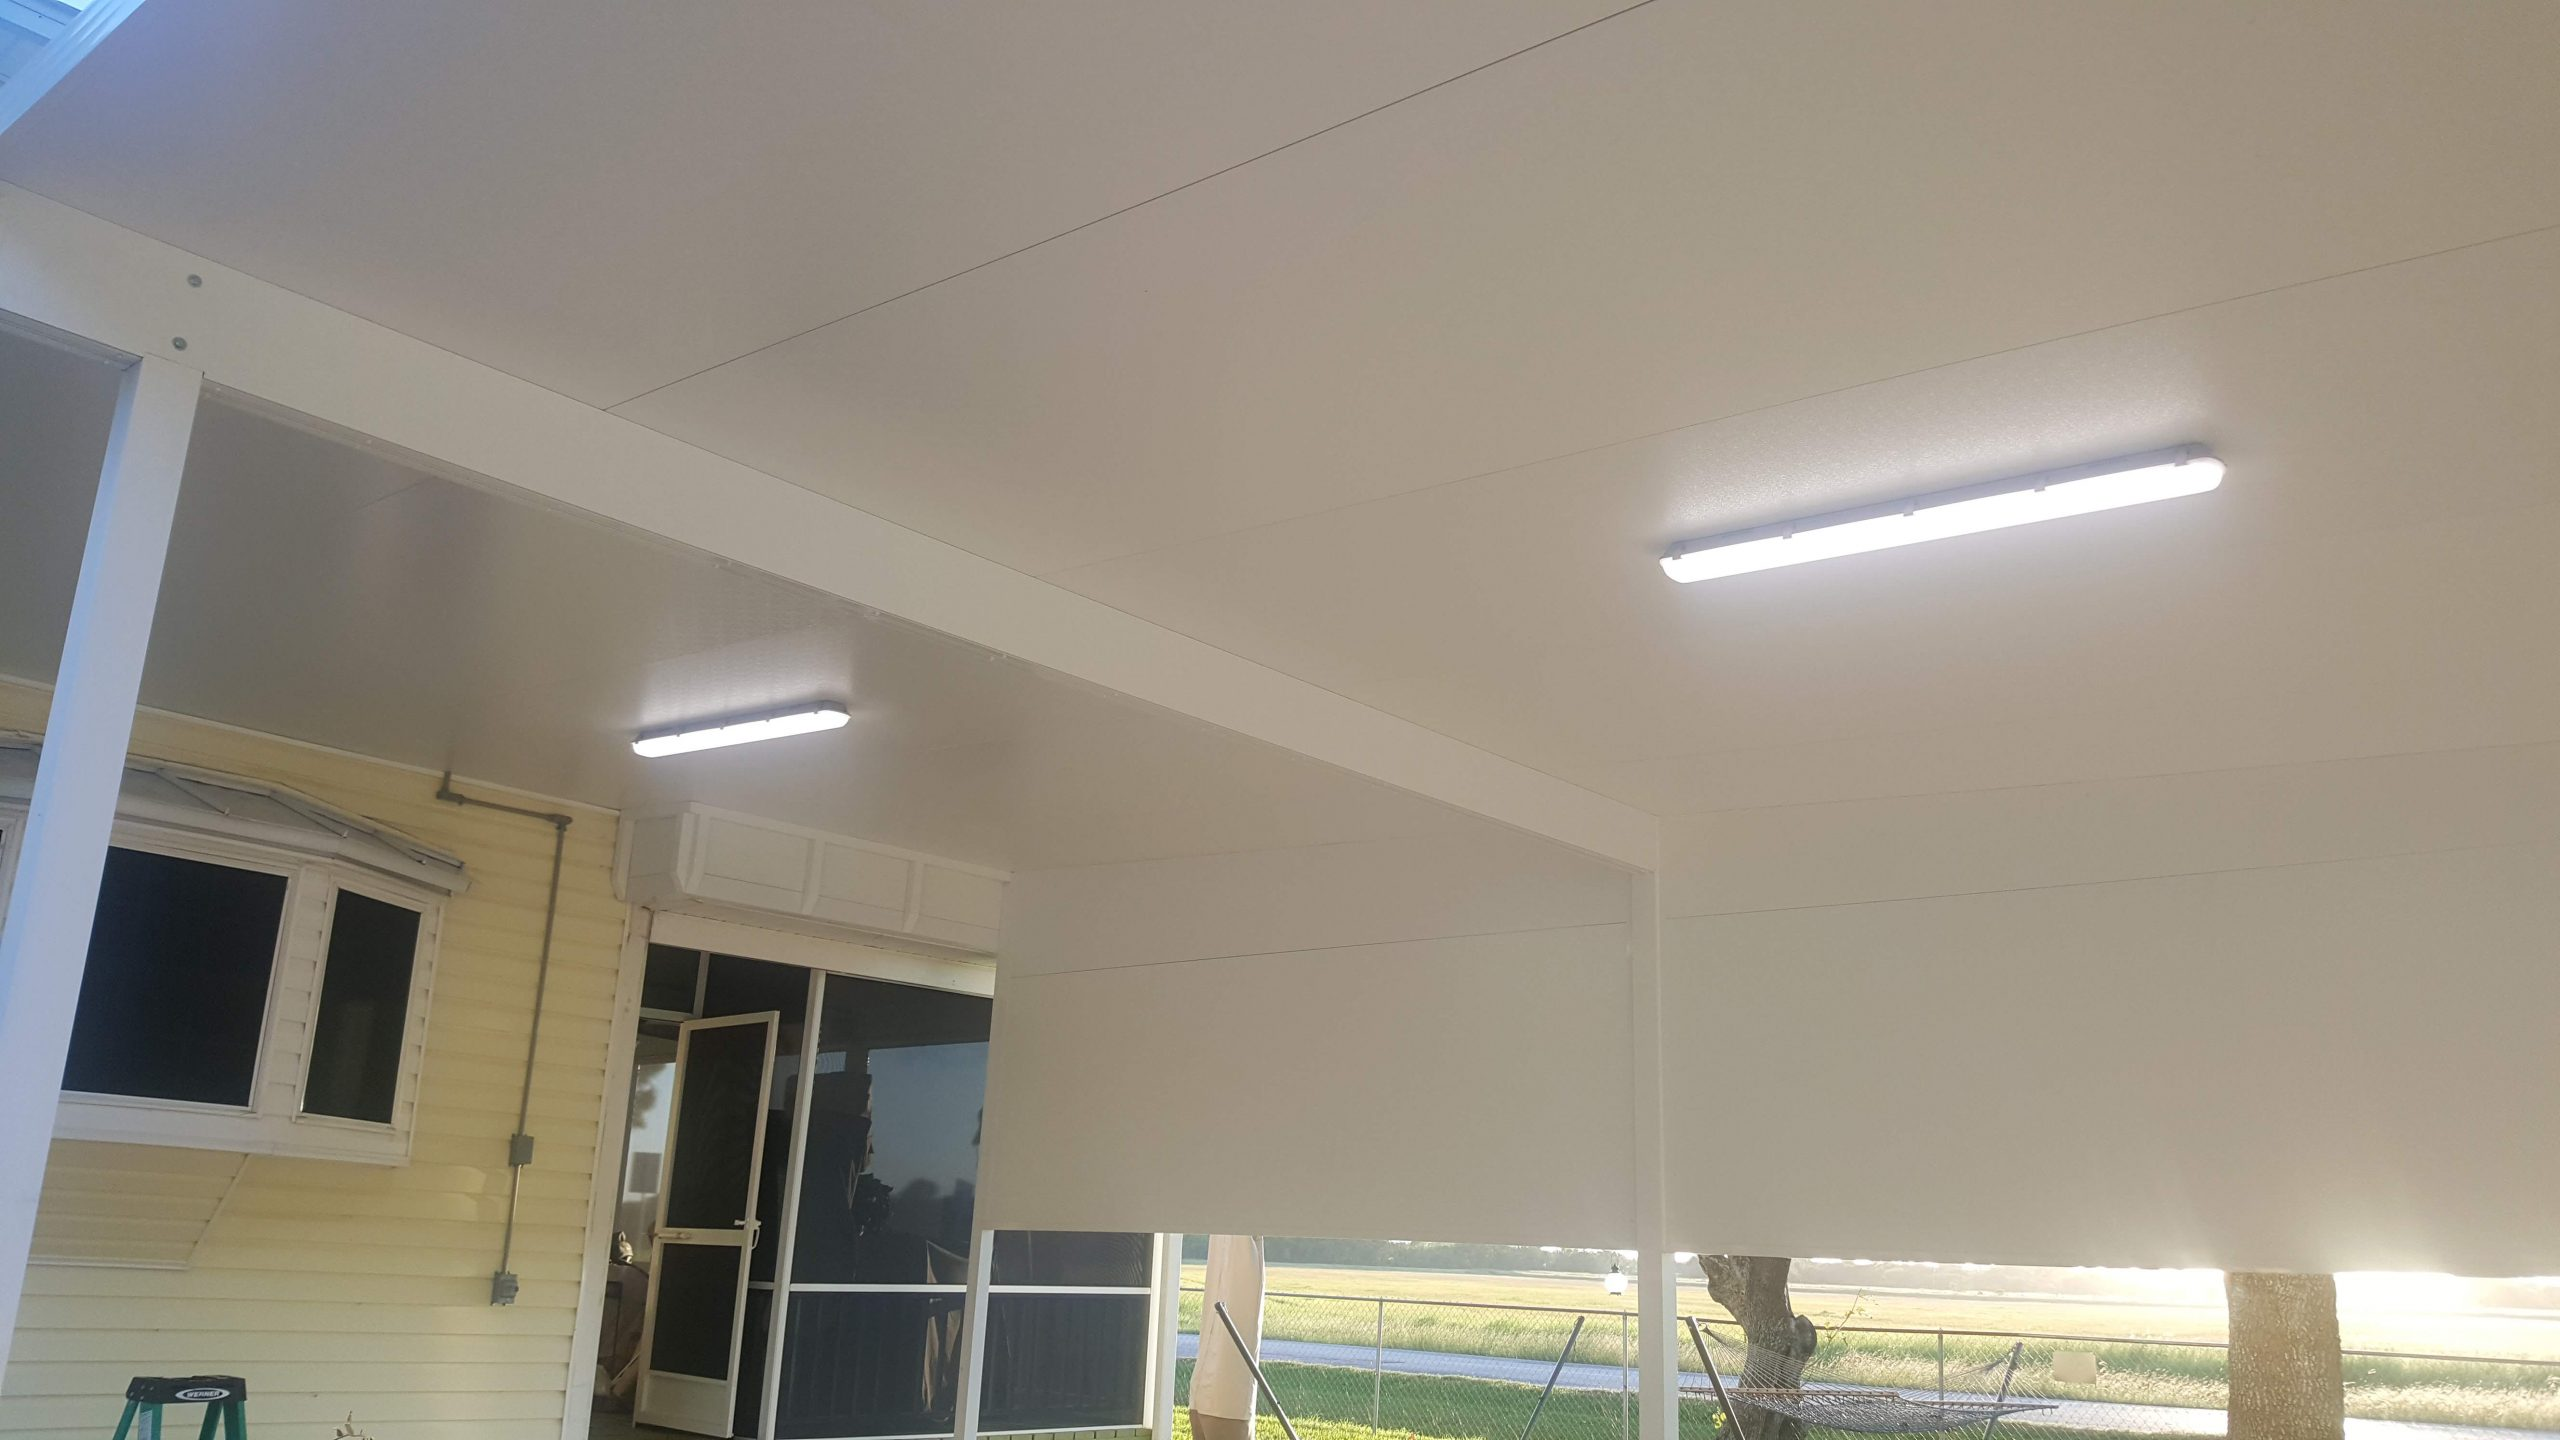 Partial Enclosed Carport cover with lighting Pearland, TX